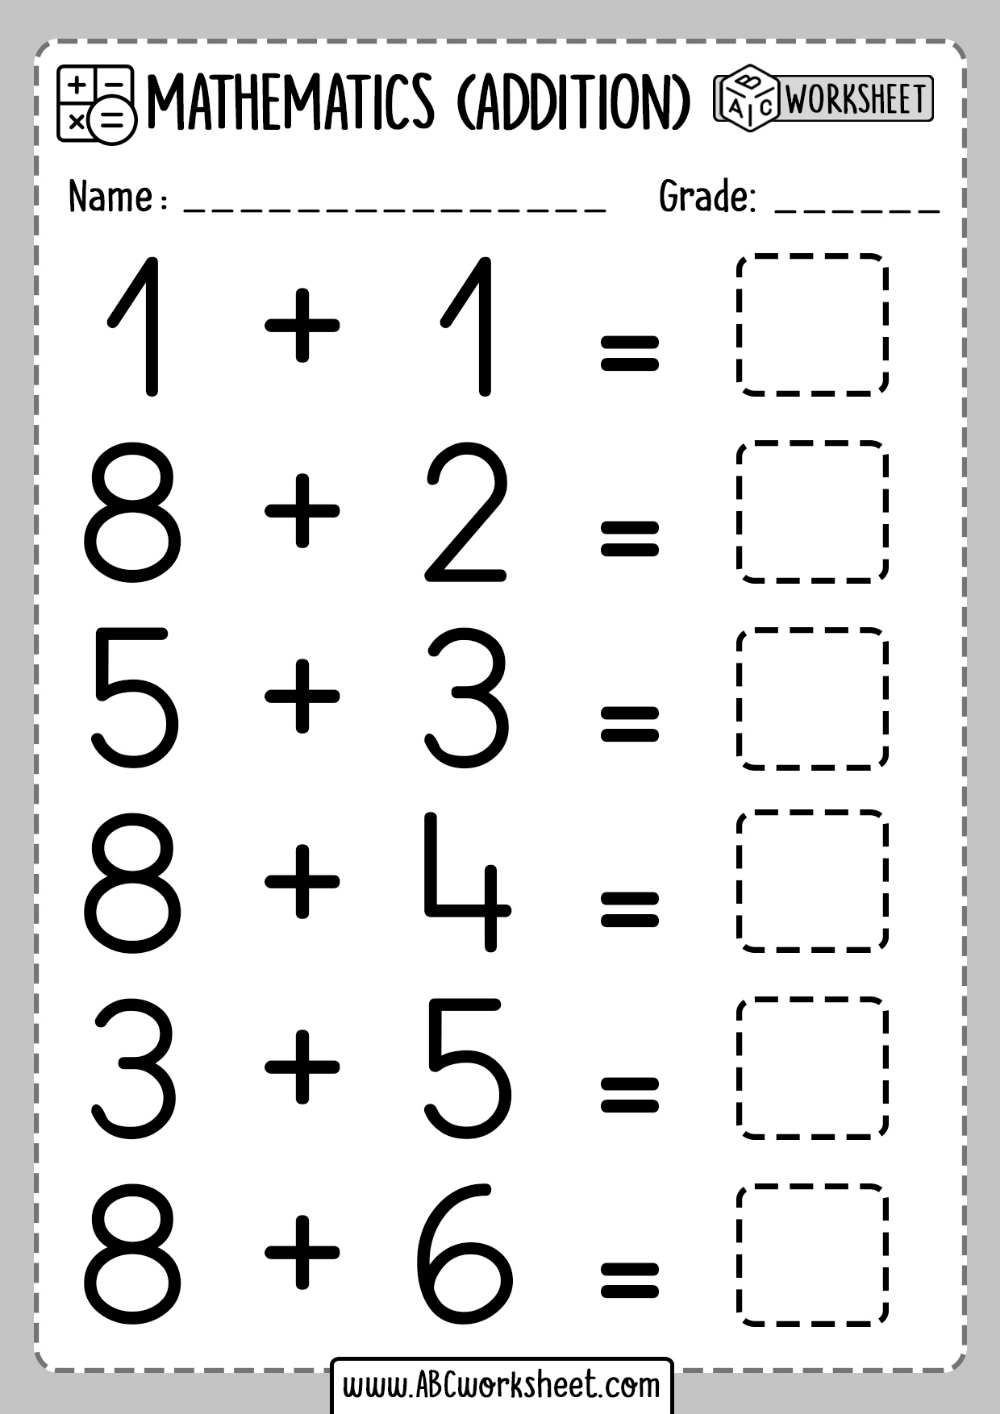 small resolution of 1st Grade Math Worksheet Addition - ABC Worksheet en 2020